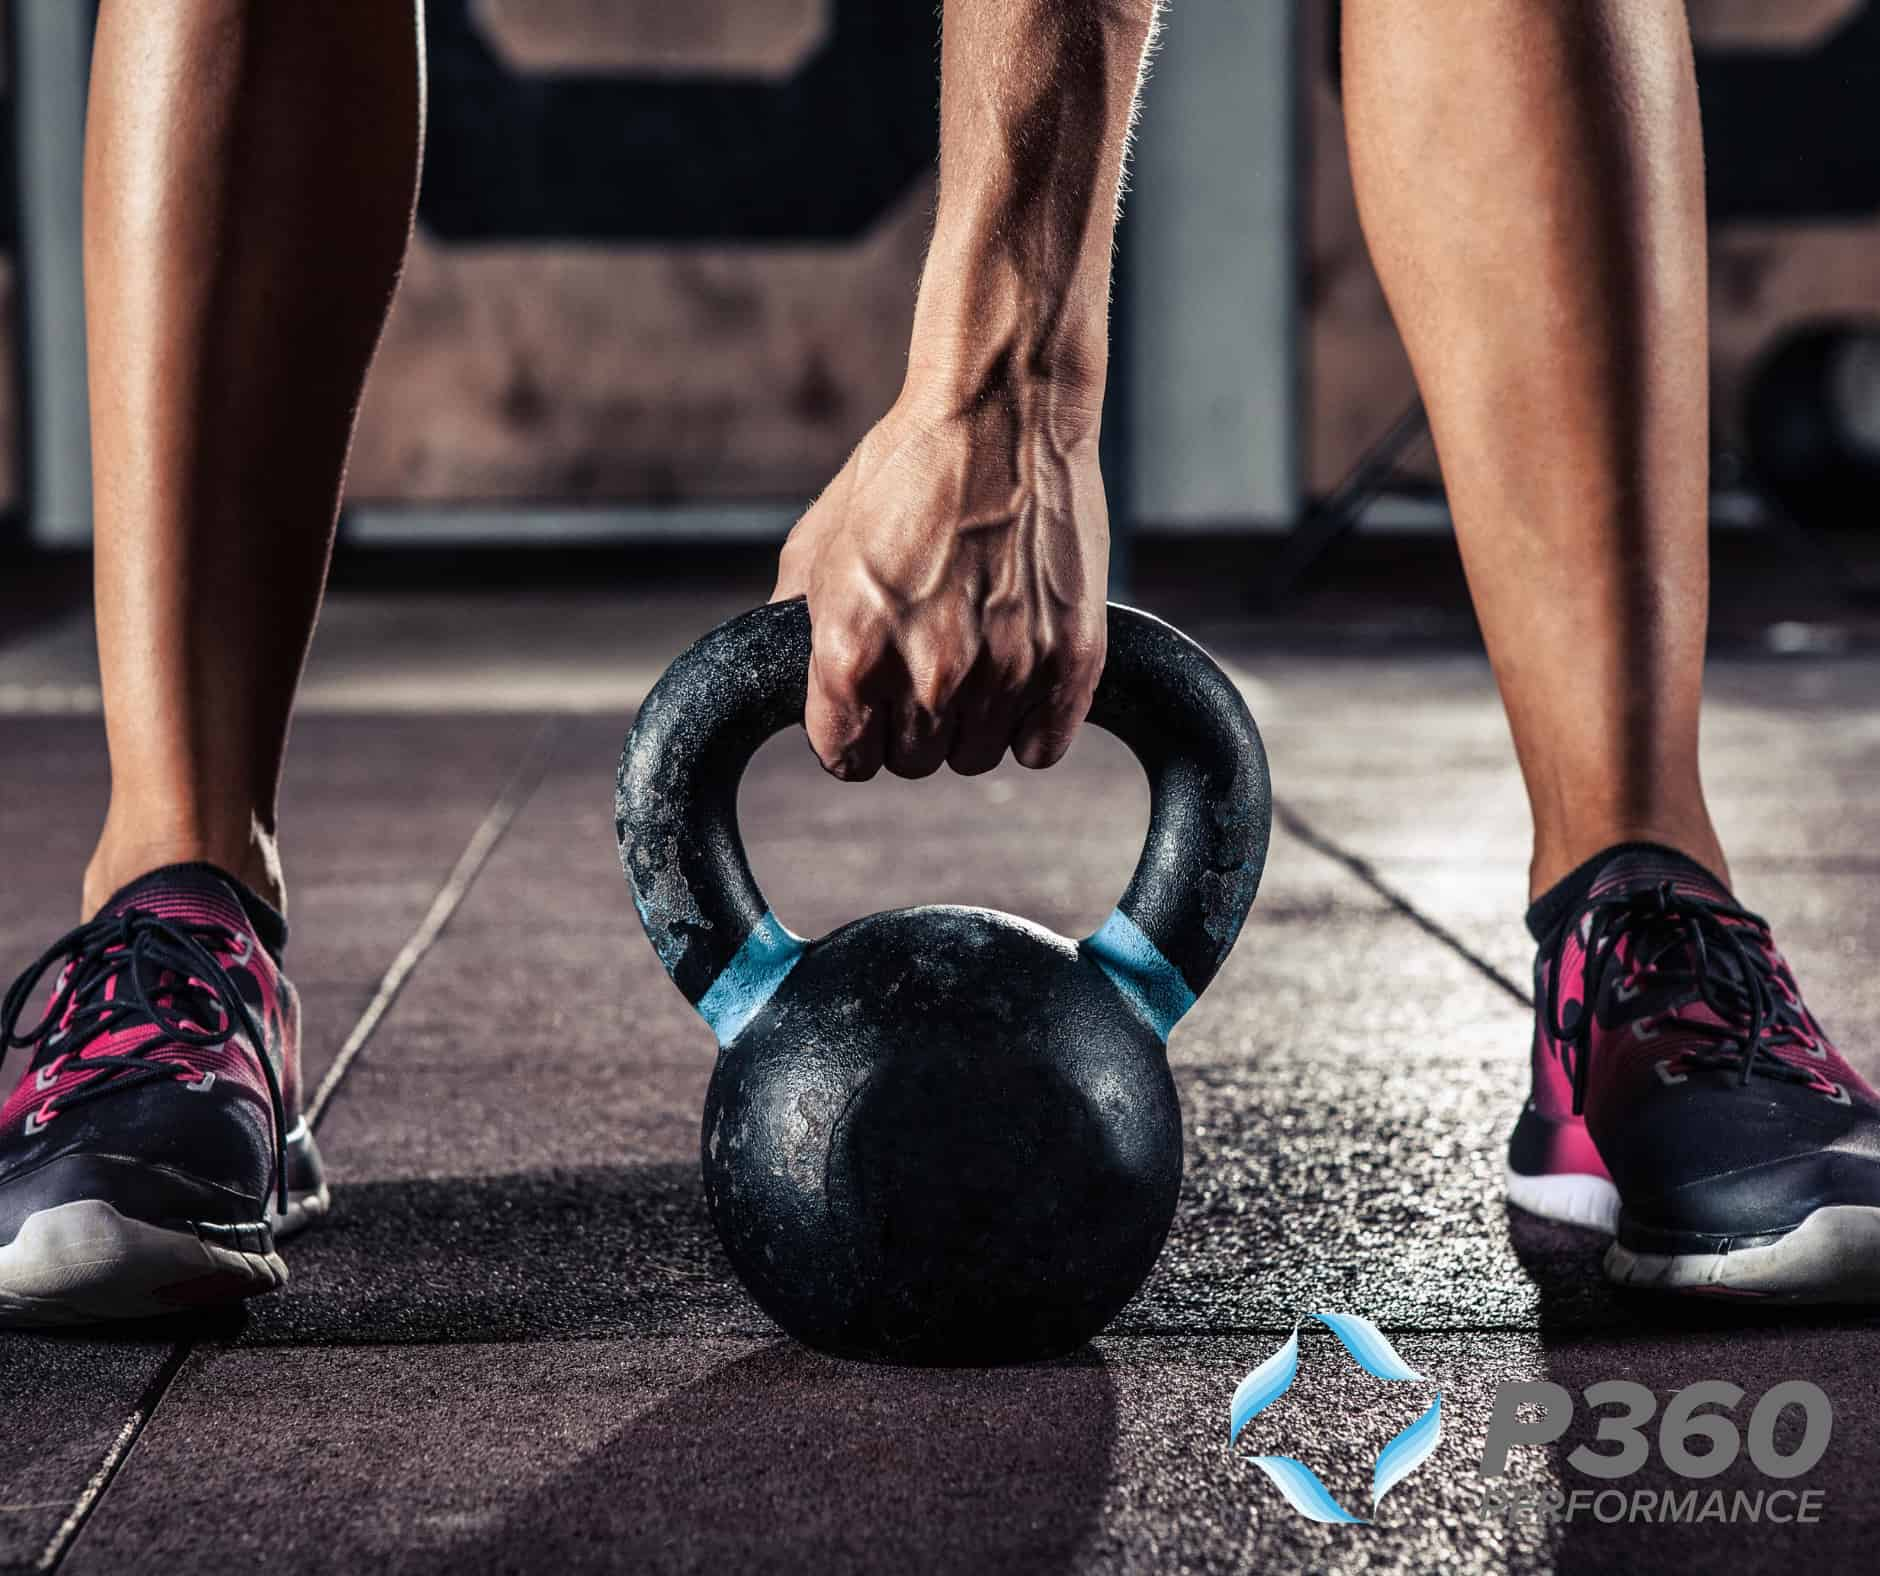 Read more about the article Strategies to Maintain Fitness During Periods of Inactivity